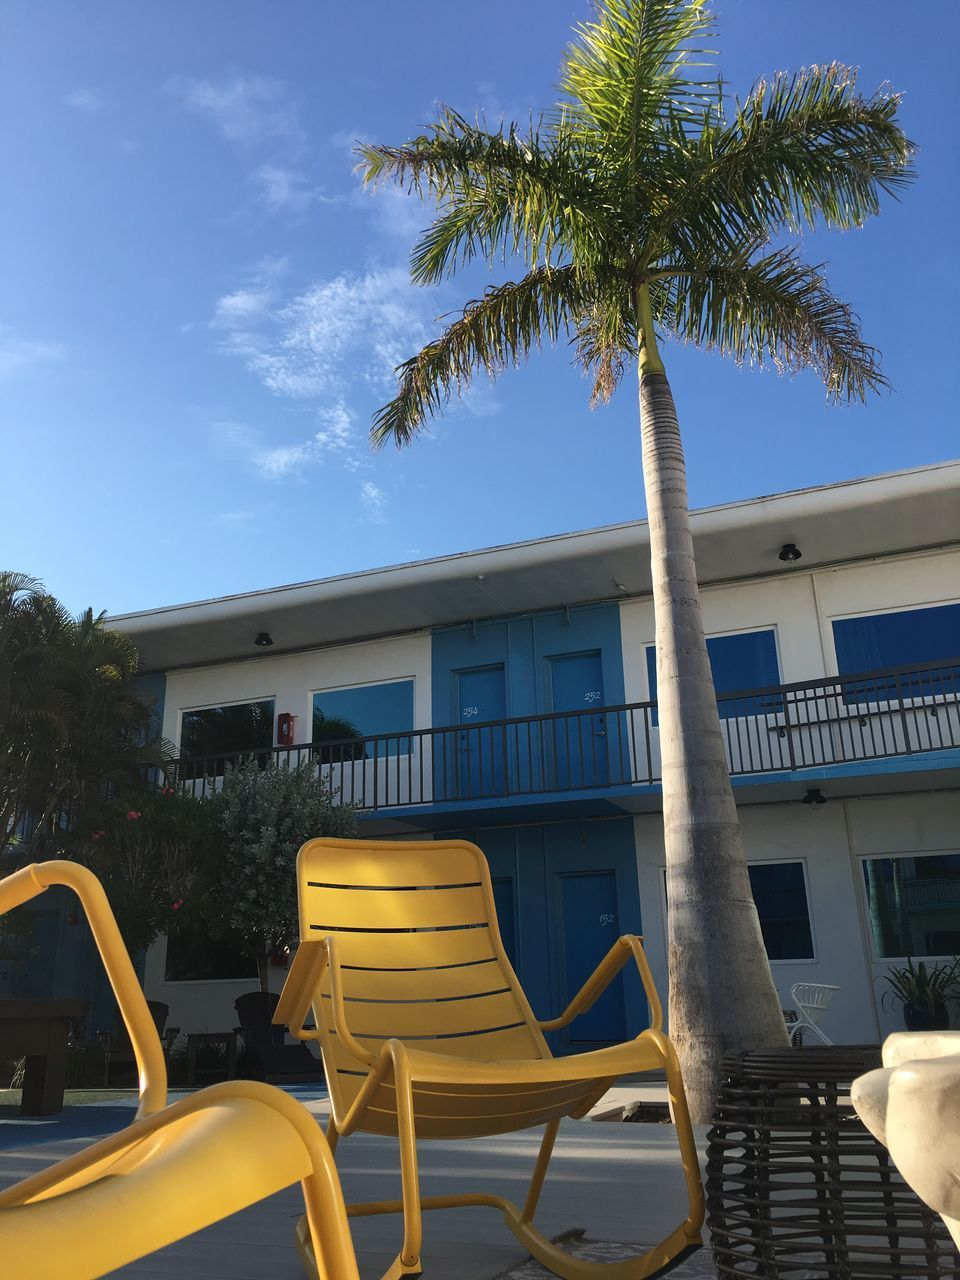 palm tree, tree, architecture, built structure, yellow, day, building exterior, chair, outdoors, sky, no people, nature